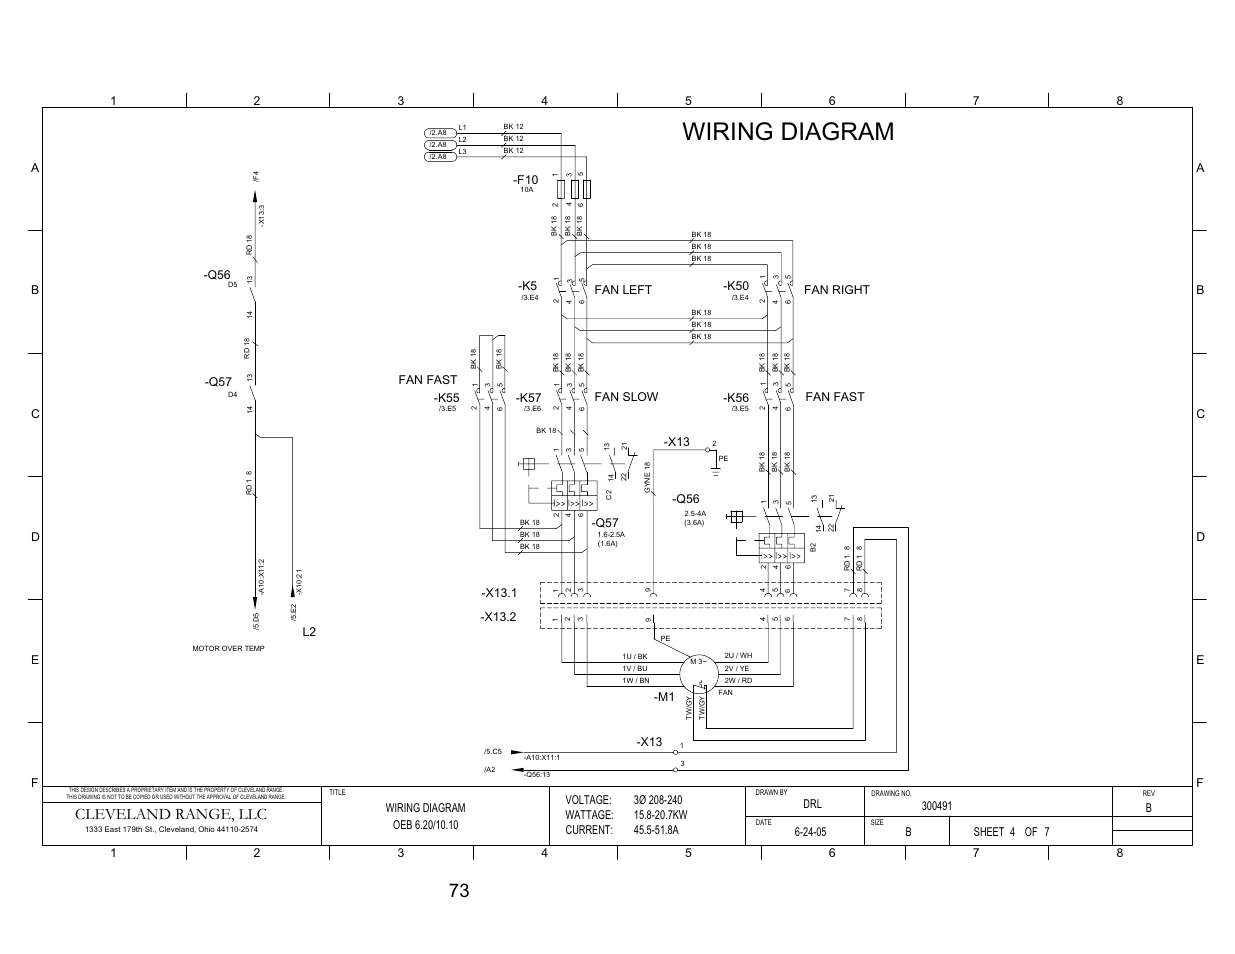 Jkp27w Ge Oven Wiring Diagram Electrical Diagrams For Jbp26gv3ad Data U2022 Convection